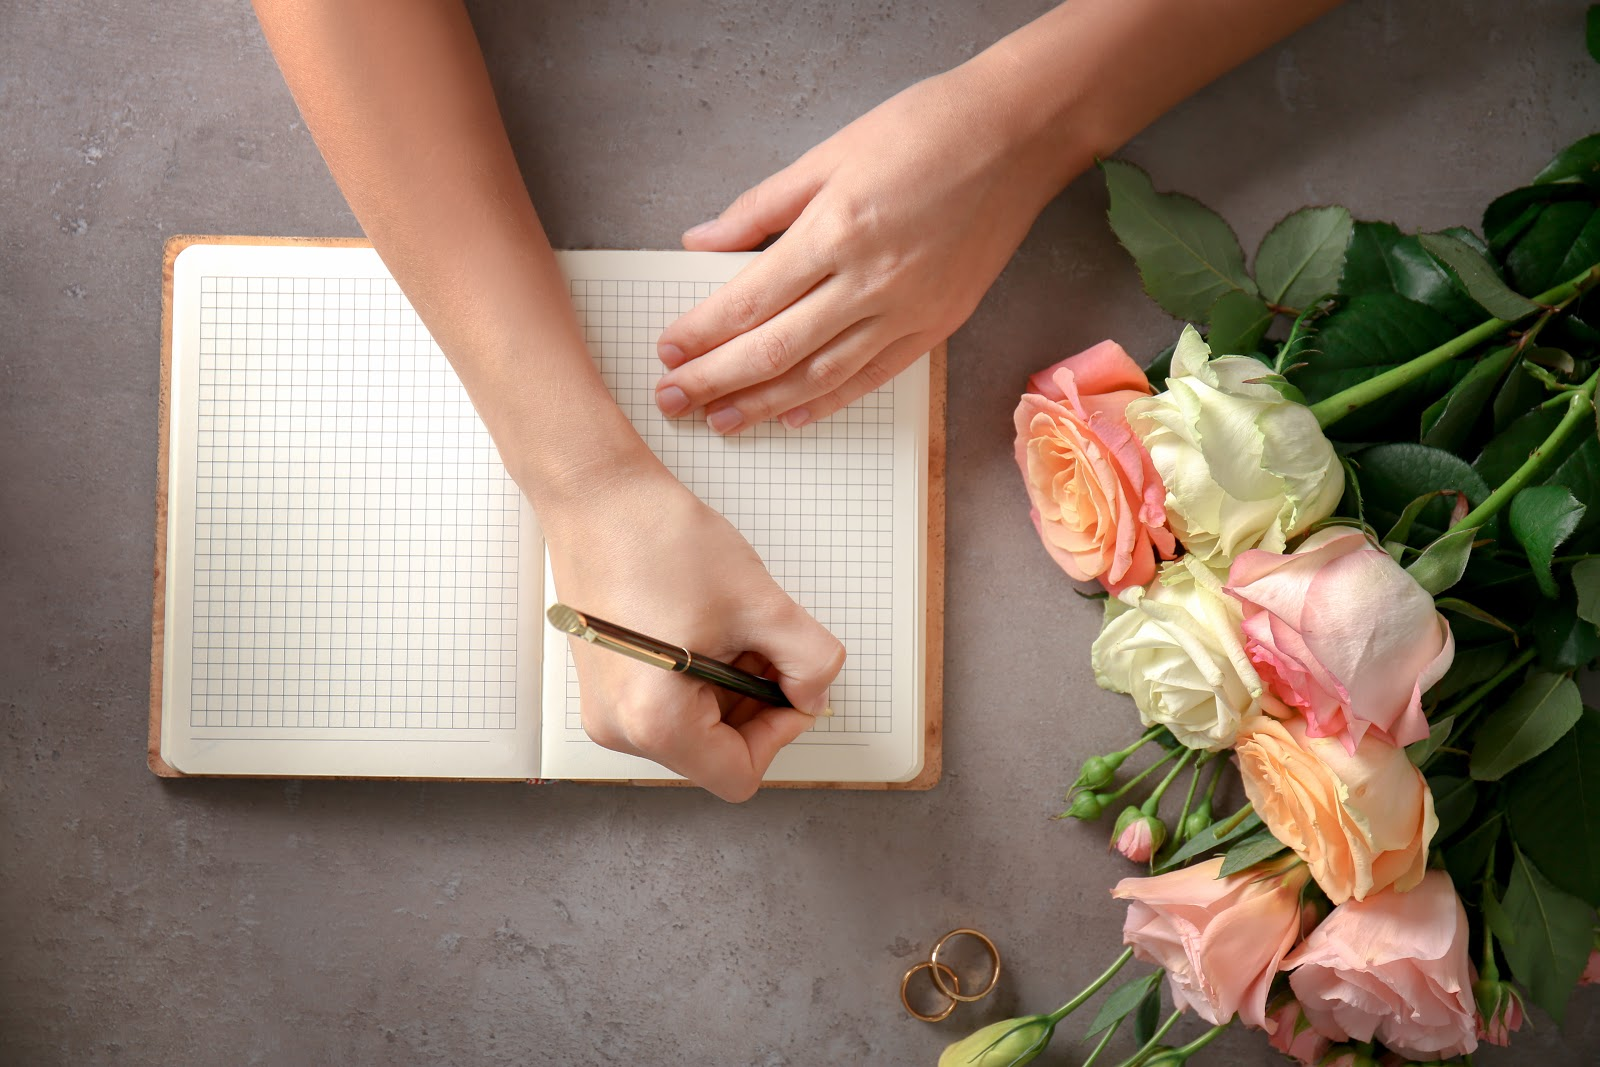 Wedding wishes: Roses and wedding rings next to hands that write notes in a notebook